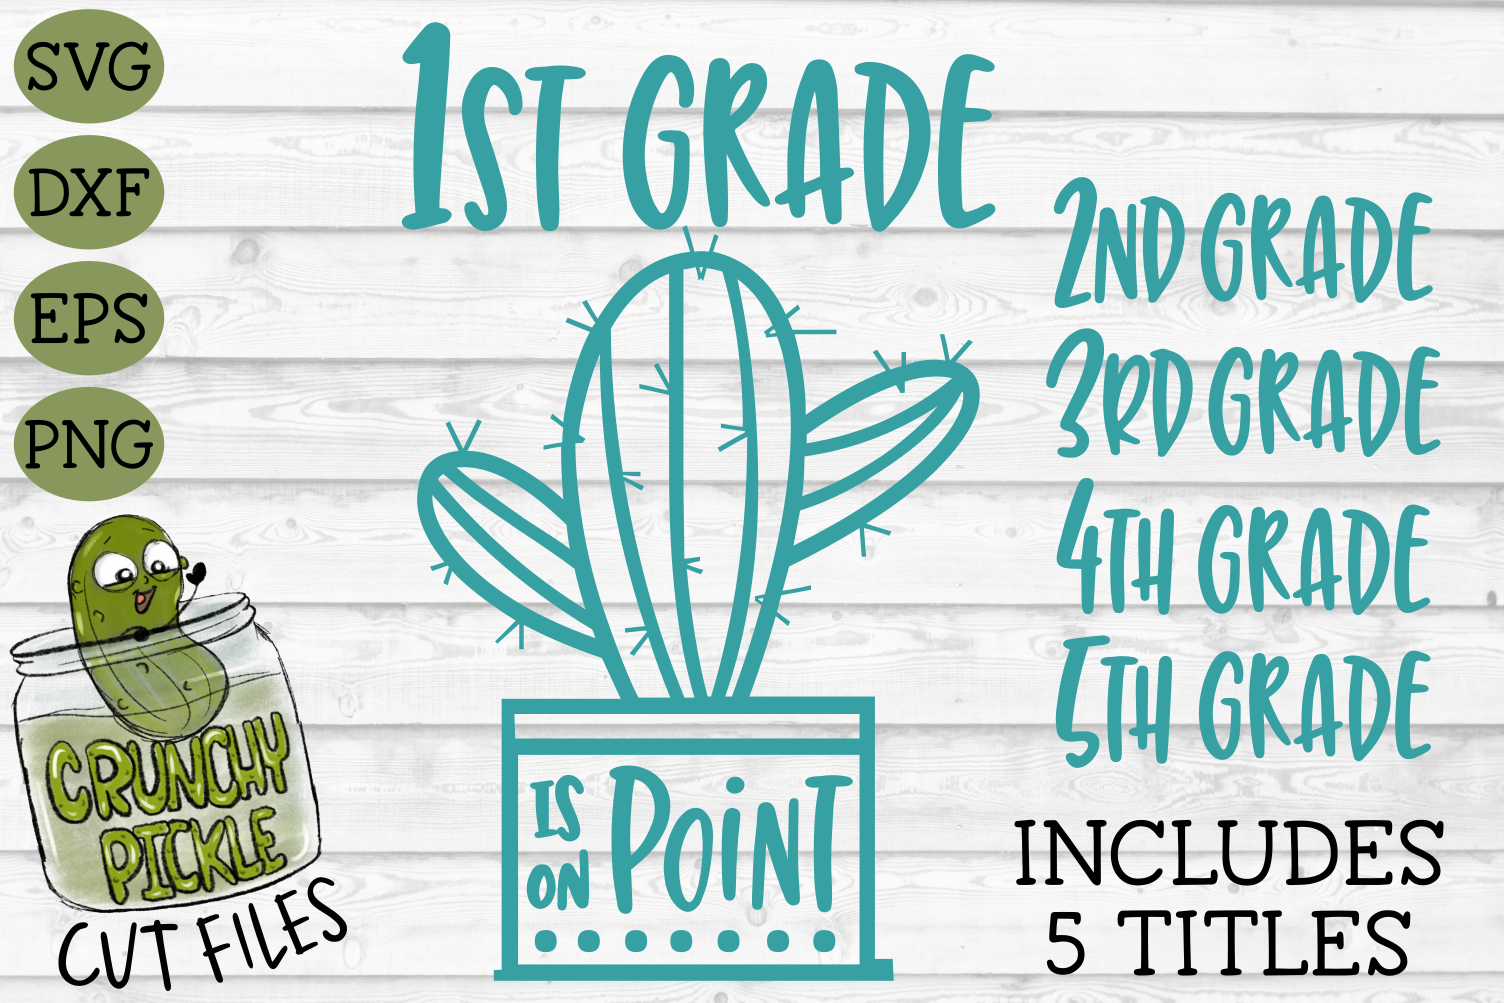 Cactus Grades On Point Elementary School SVG example image 1